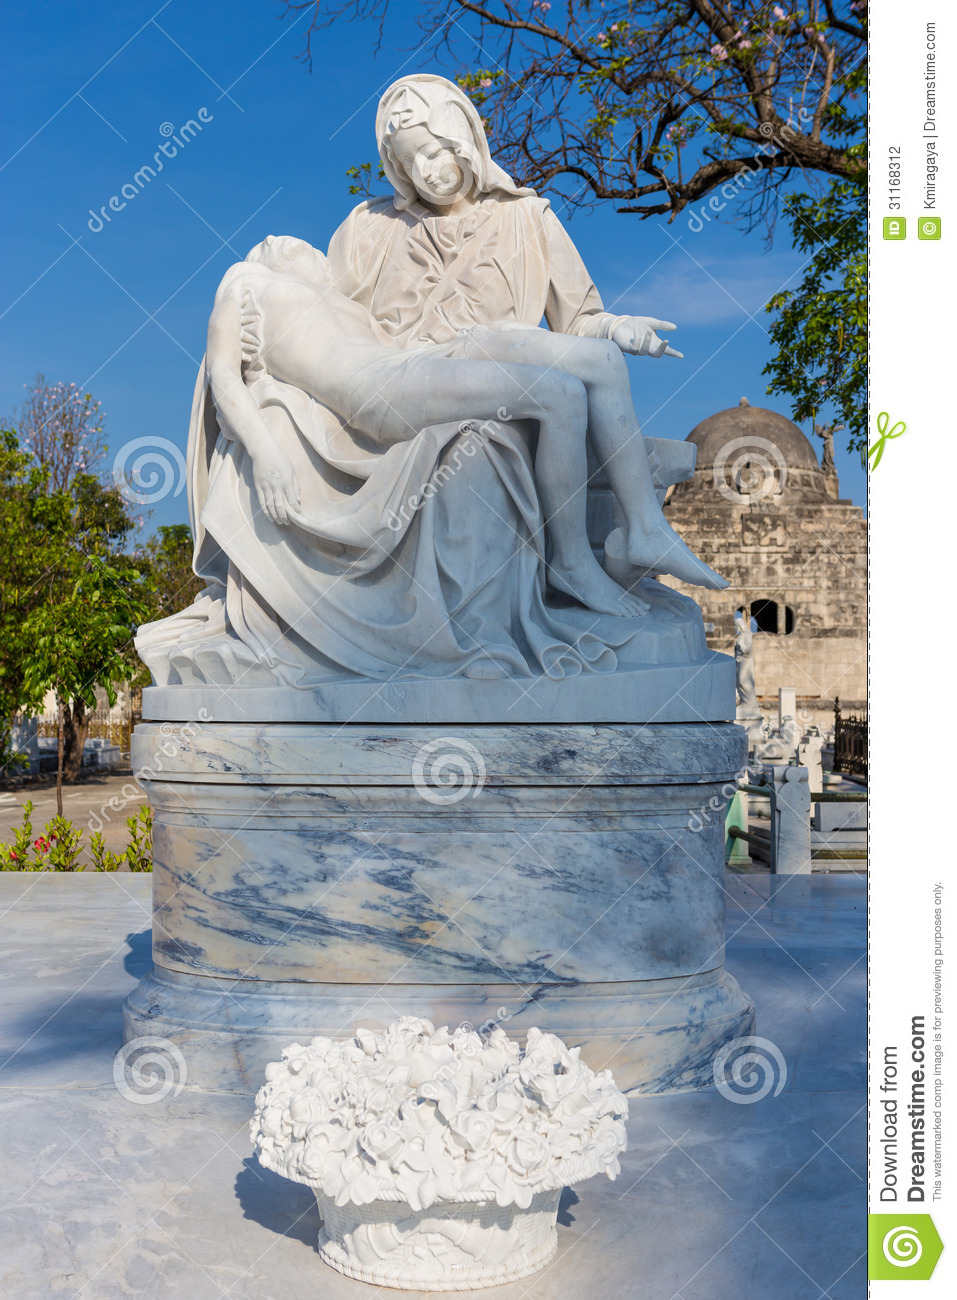 Statue Of The Virgin Mary Cradling A Dead Jesus Stock